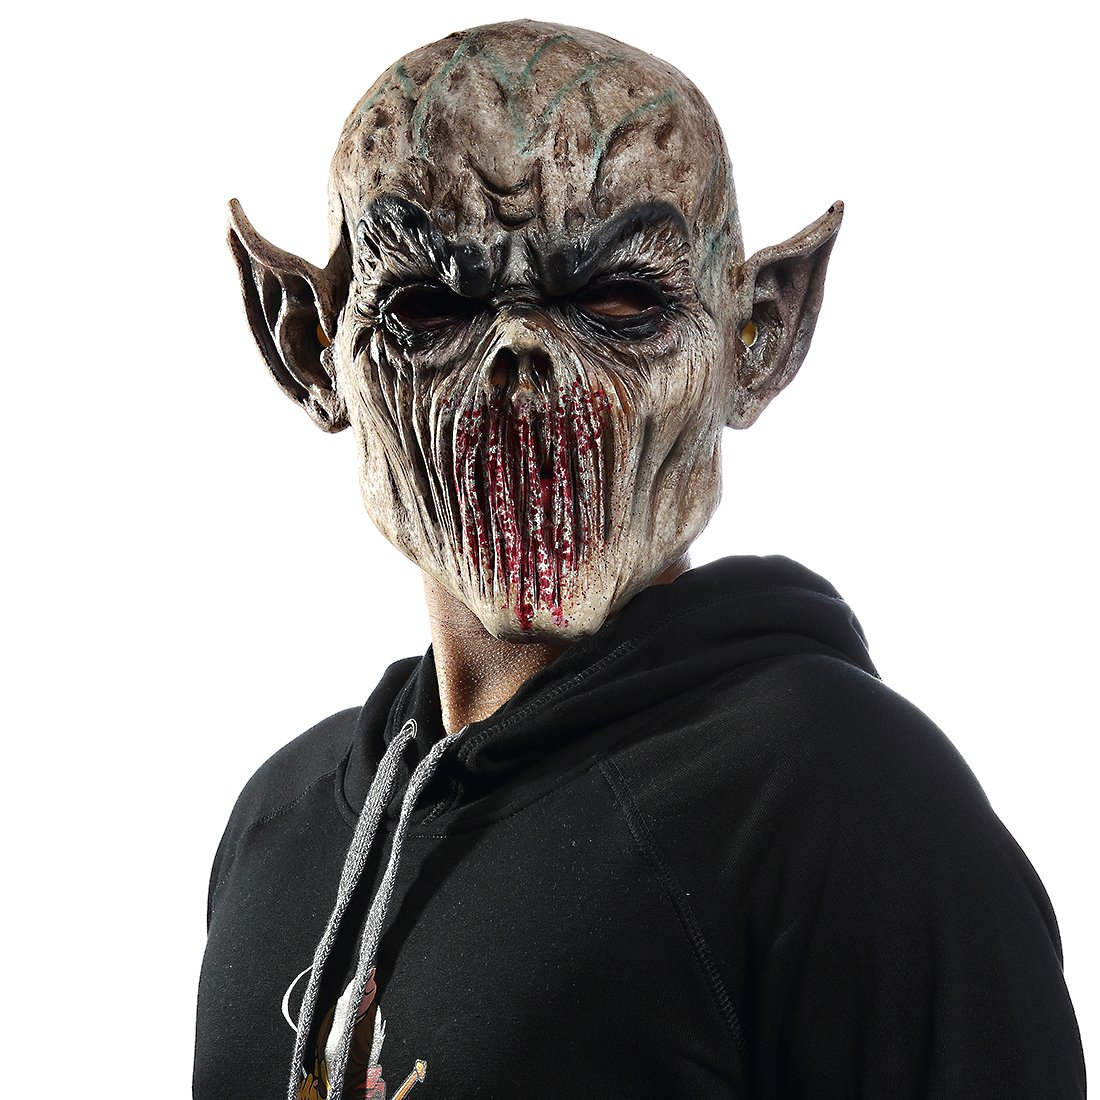 Mo Fang Gong She Halloween Horrific Demon The Evil Dead Cosplay Props Alien Bloody Monster Masks by Mo Fang Gong She